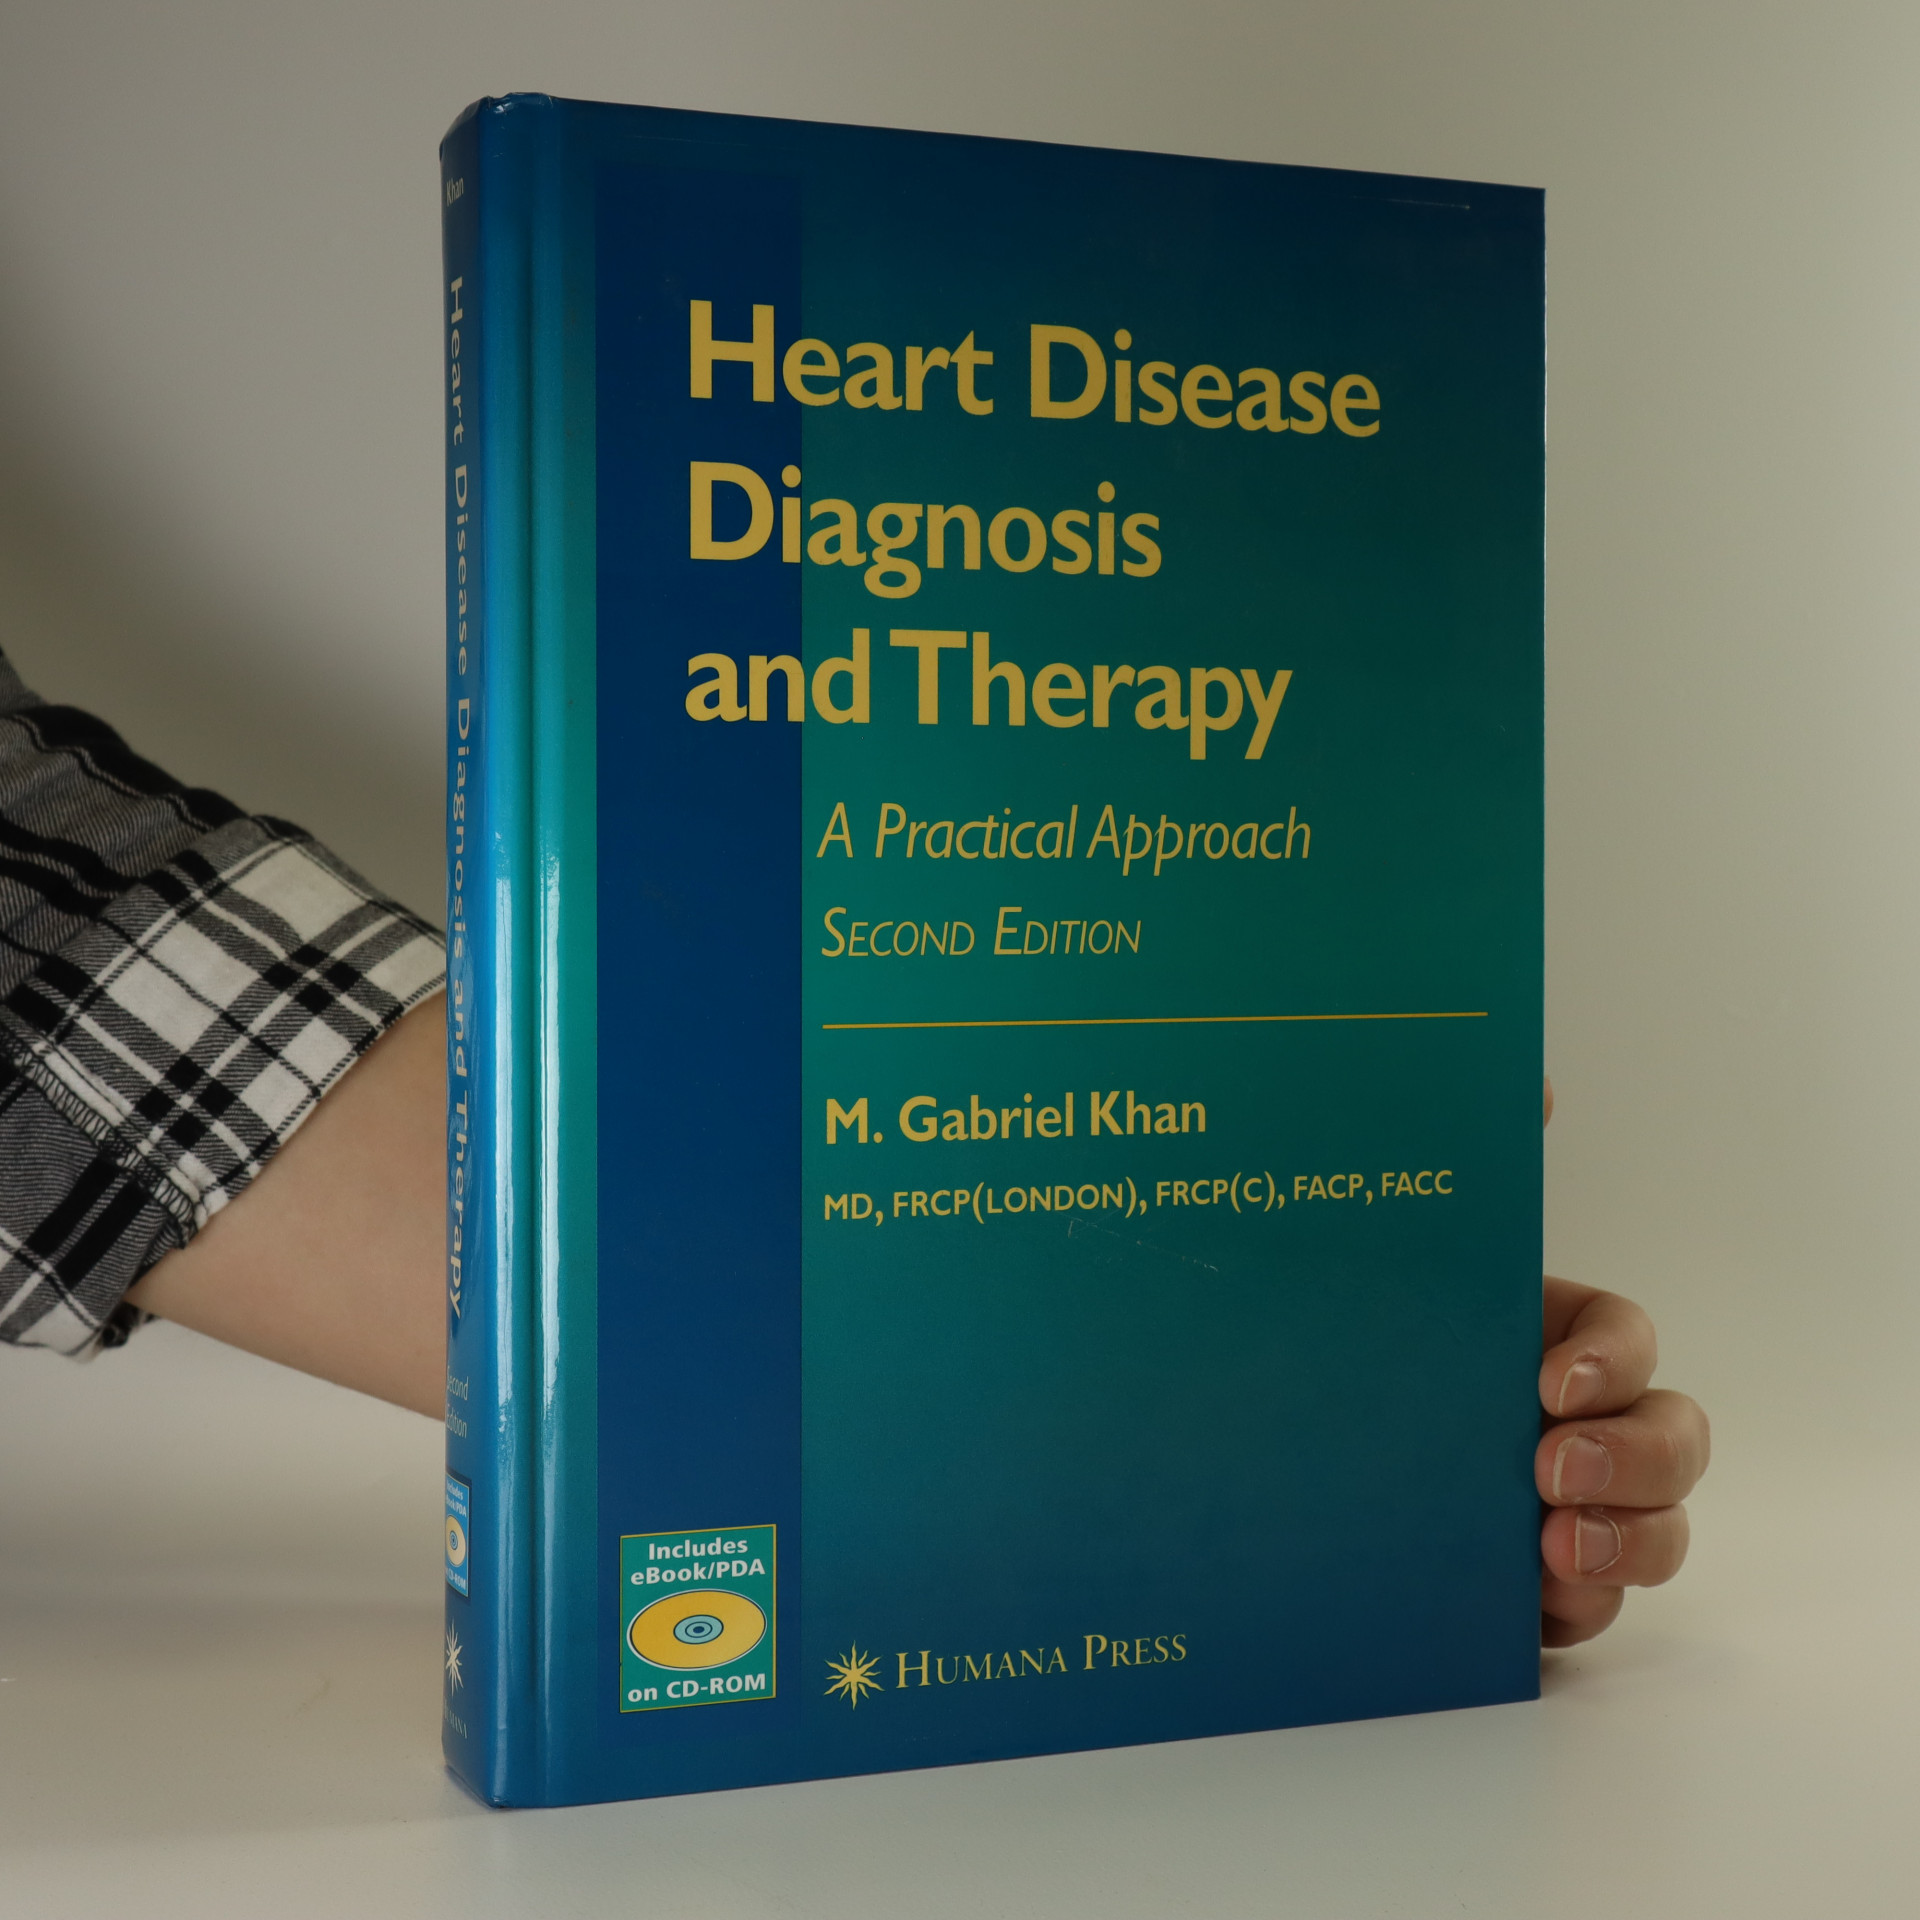 antikvární kniha Heart Disease Diagnosis and Therapy. A Practical Approach, neuveden